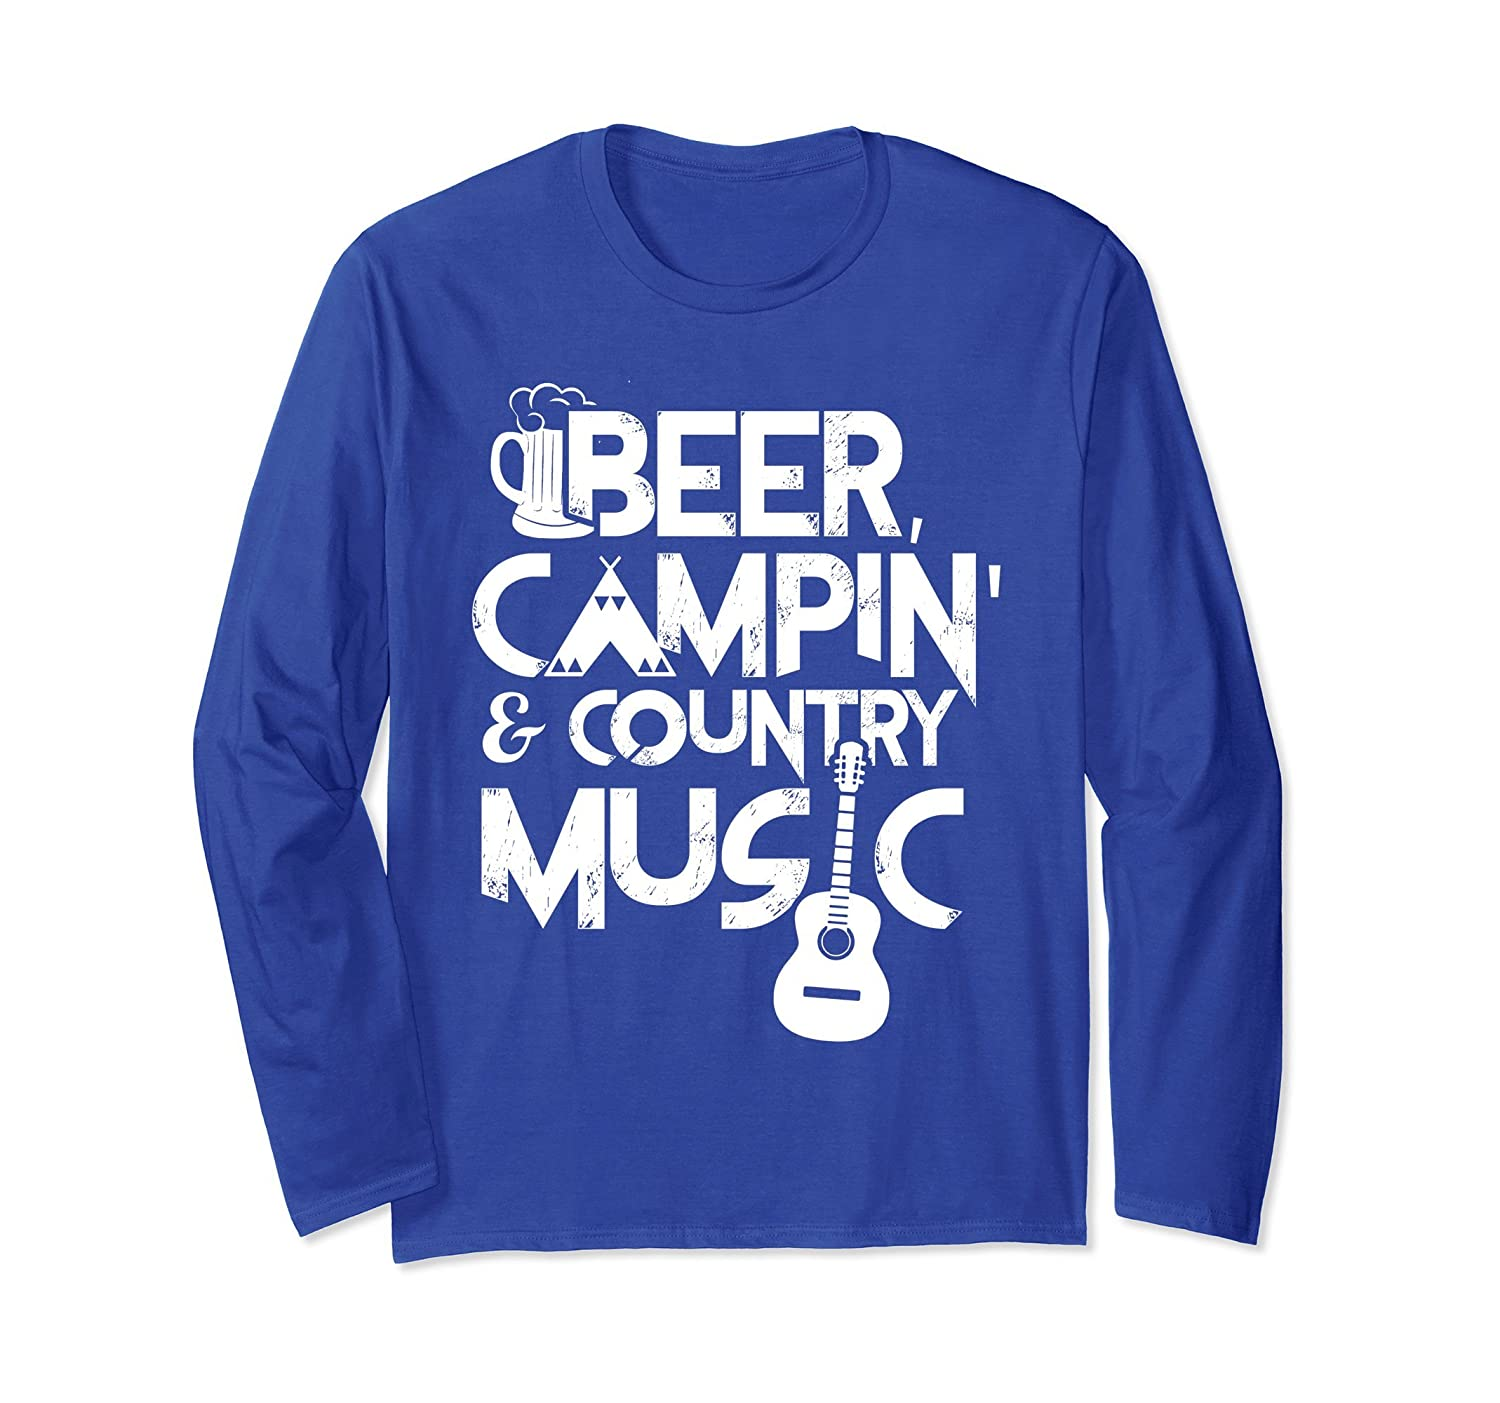 Beer Campin' & Country Music Long Sleeve-mt